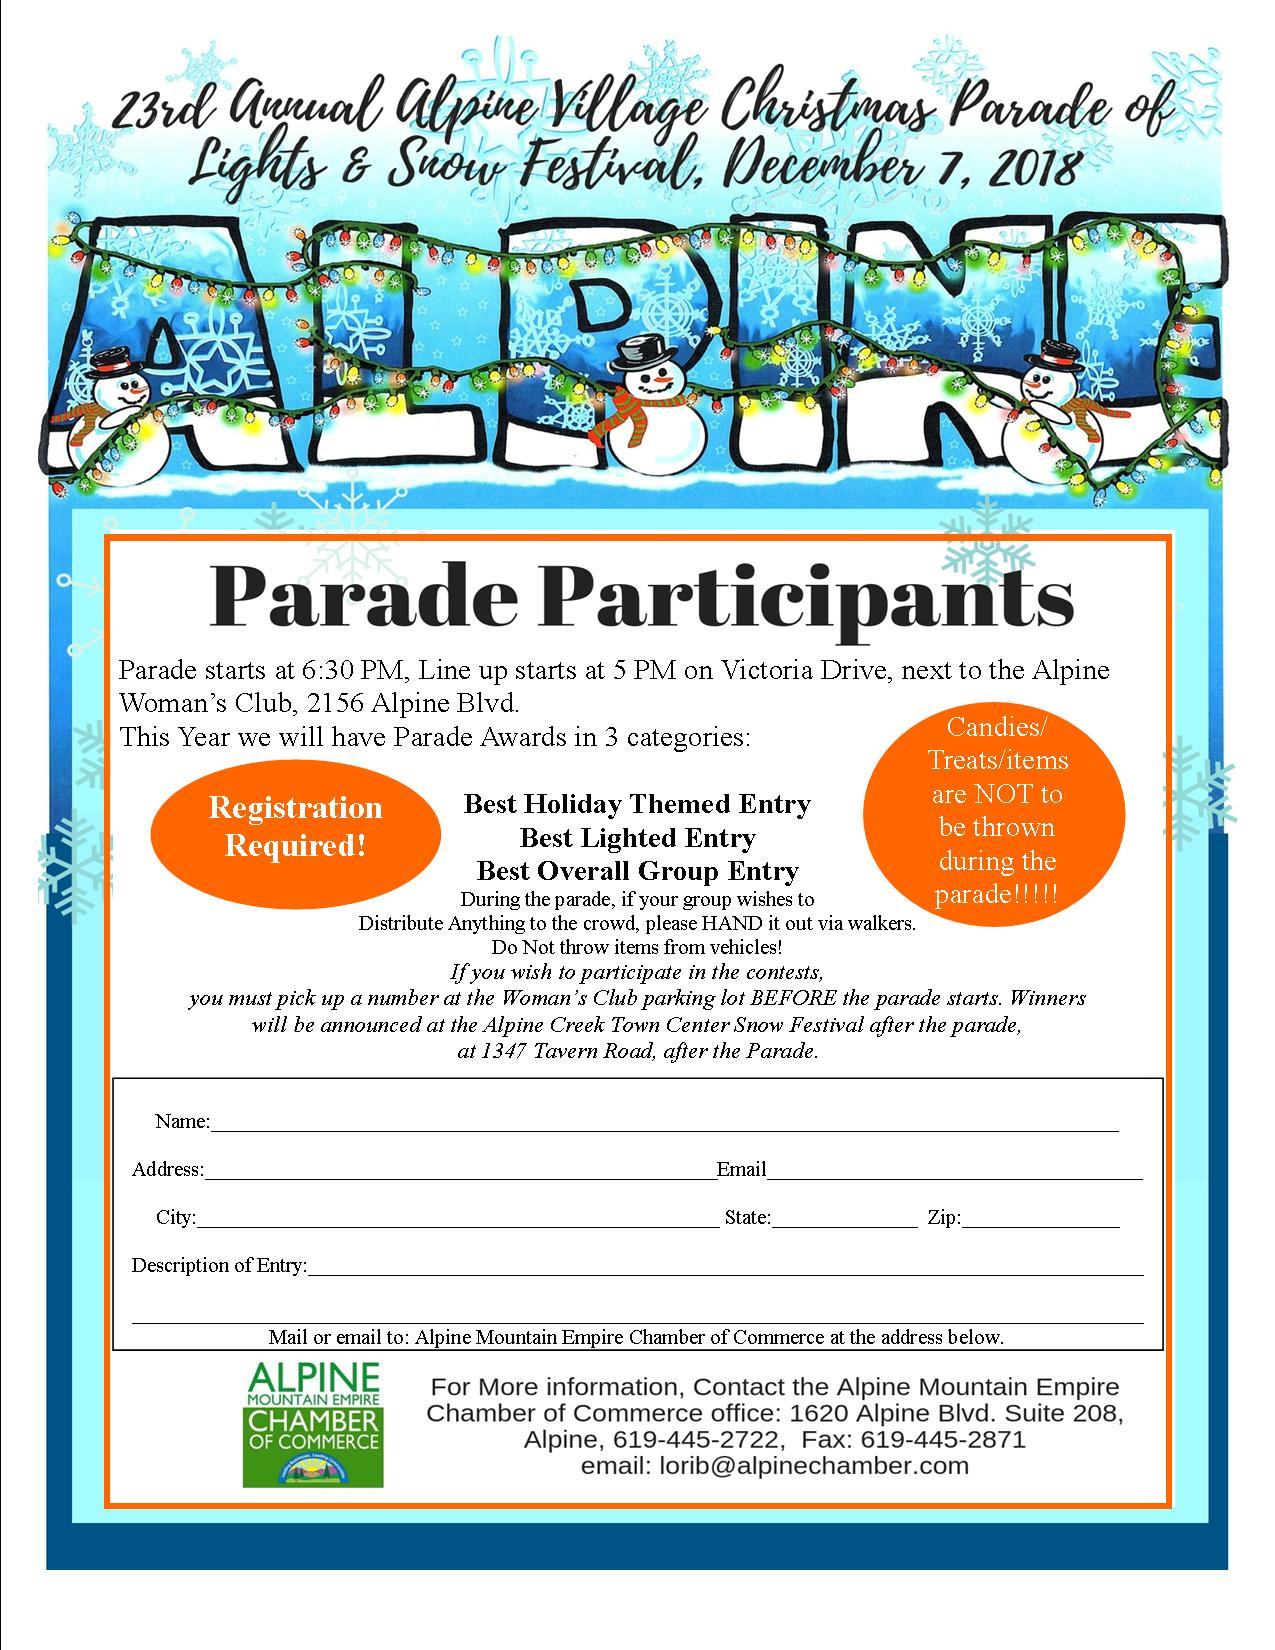 2018-new-Christmas-Parade-Participant-Entry-Form.jpg